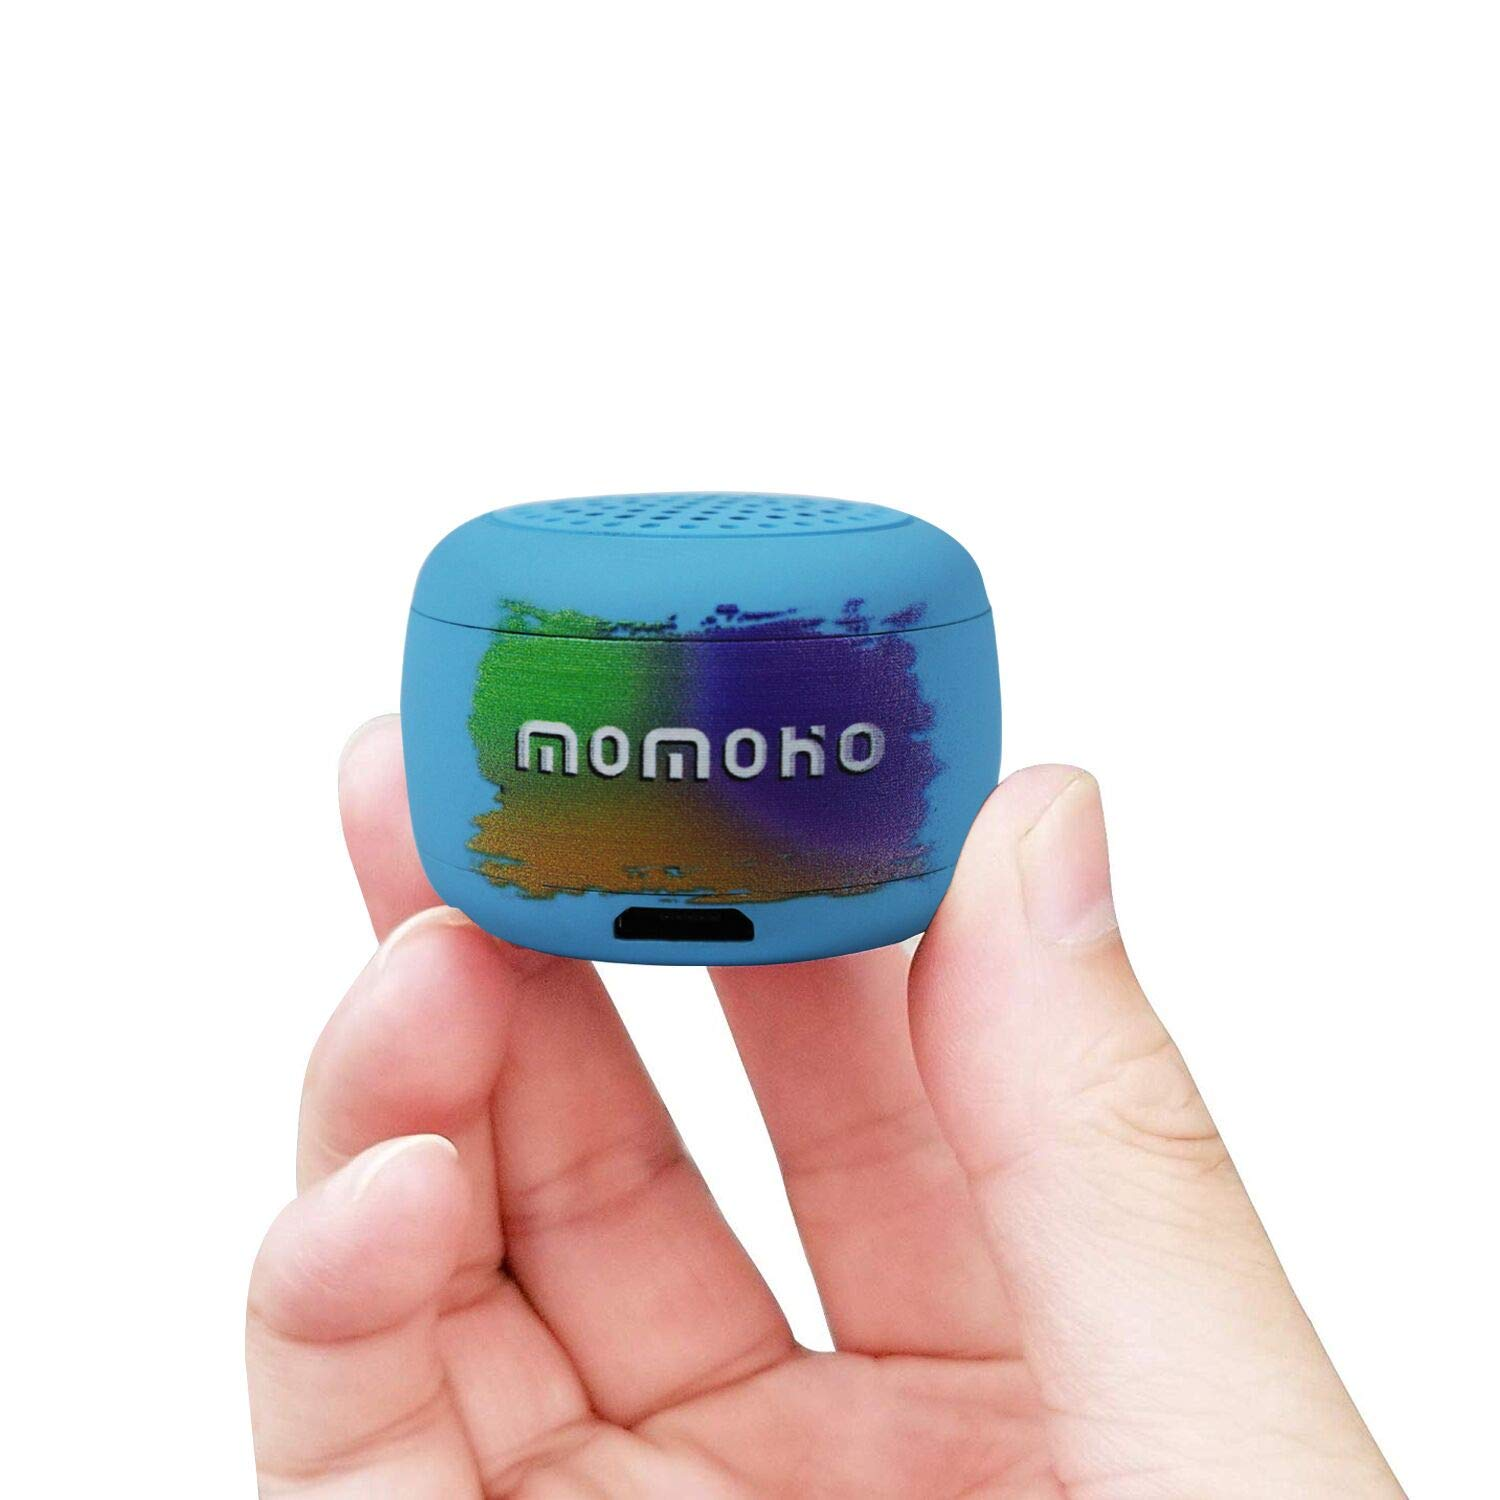 momoho Small Bluetooth Speaker - Mini Size but Great Sound Quality,Photo Selfie Button & Answer Phone Calls,BTS0011 (Blue) by momoho